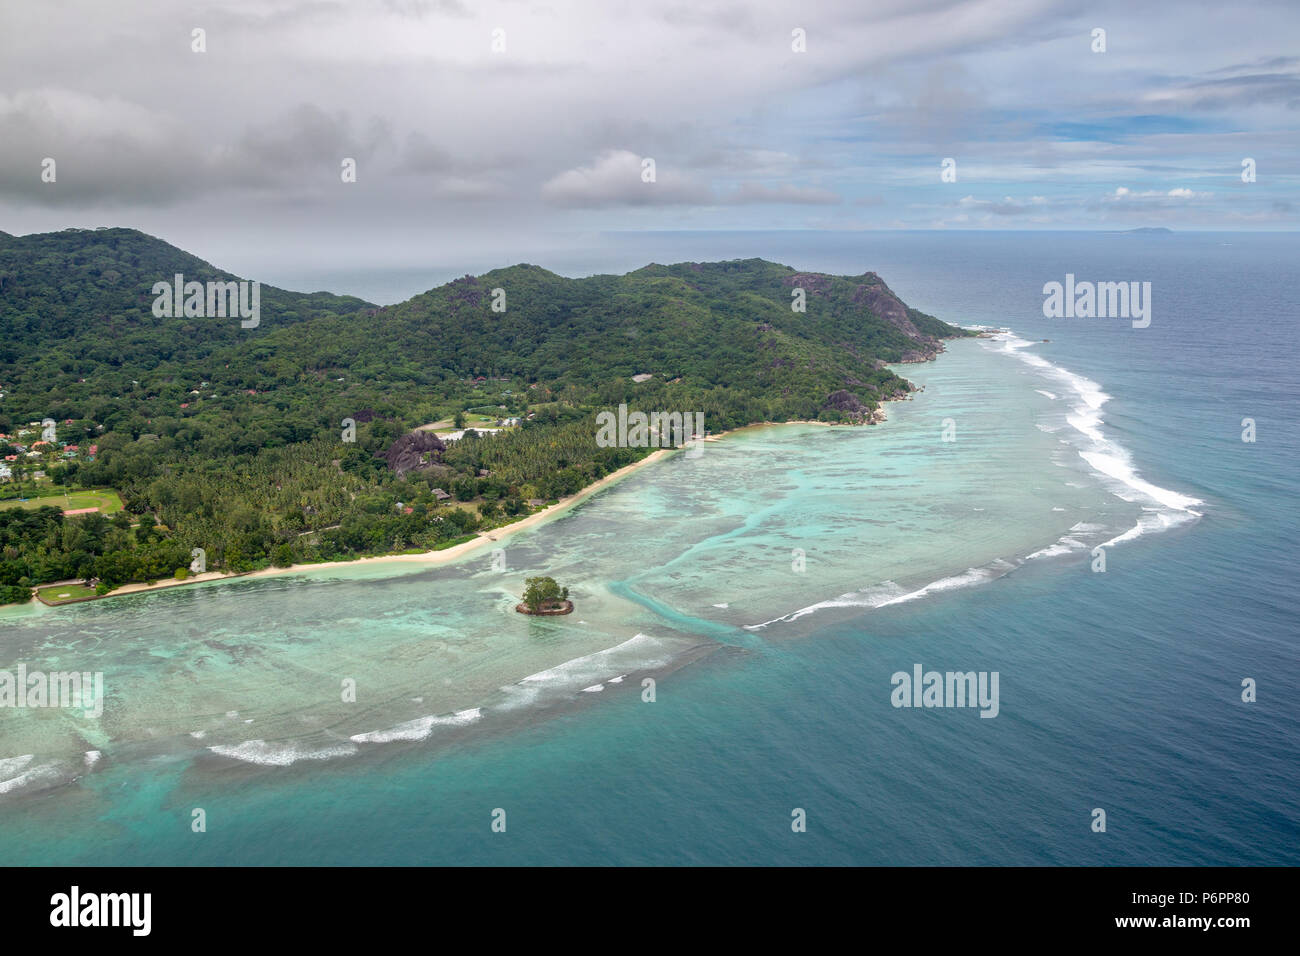 Aerial view of La Digue, Seychelles in the Indian Ocean. - Stock Image